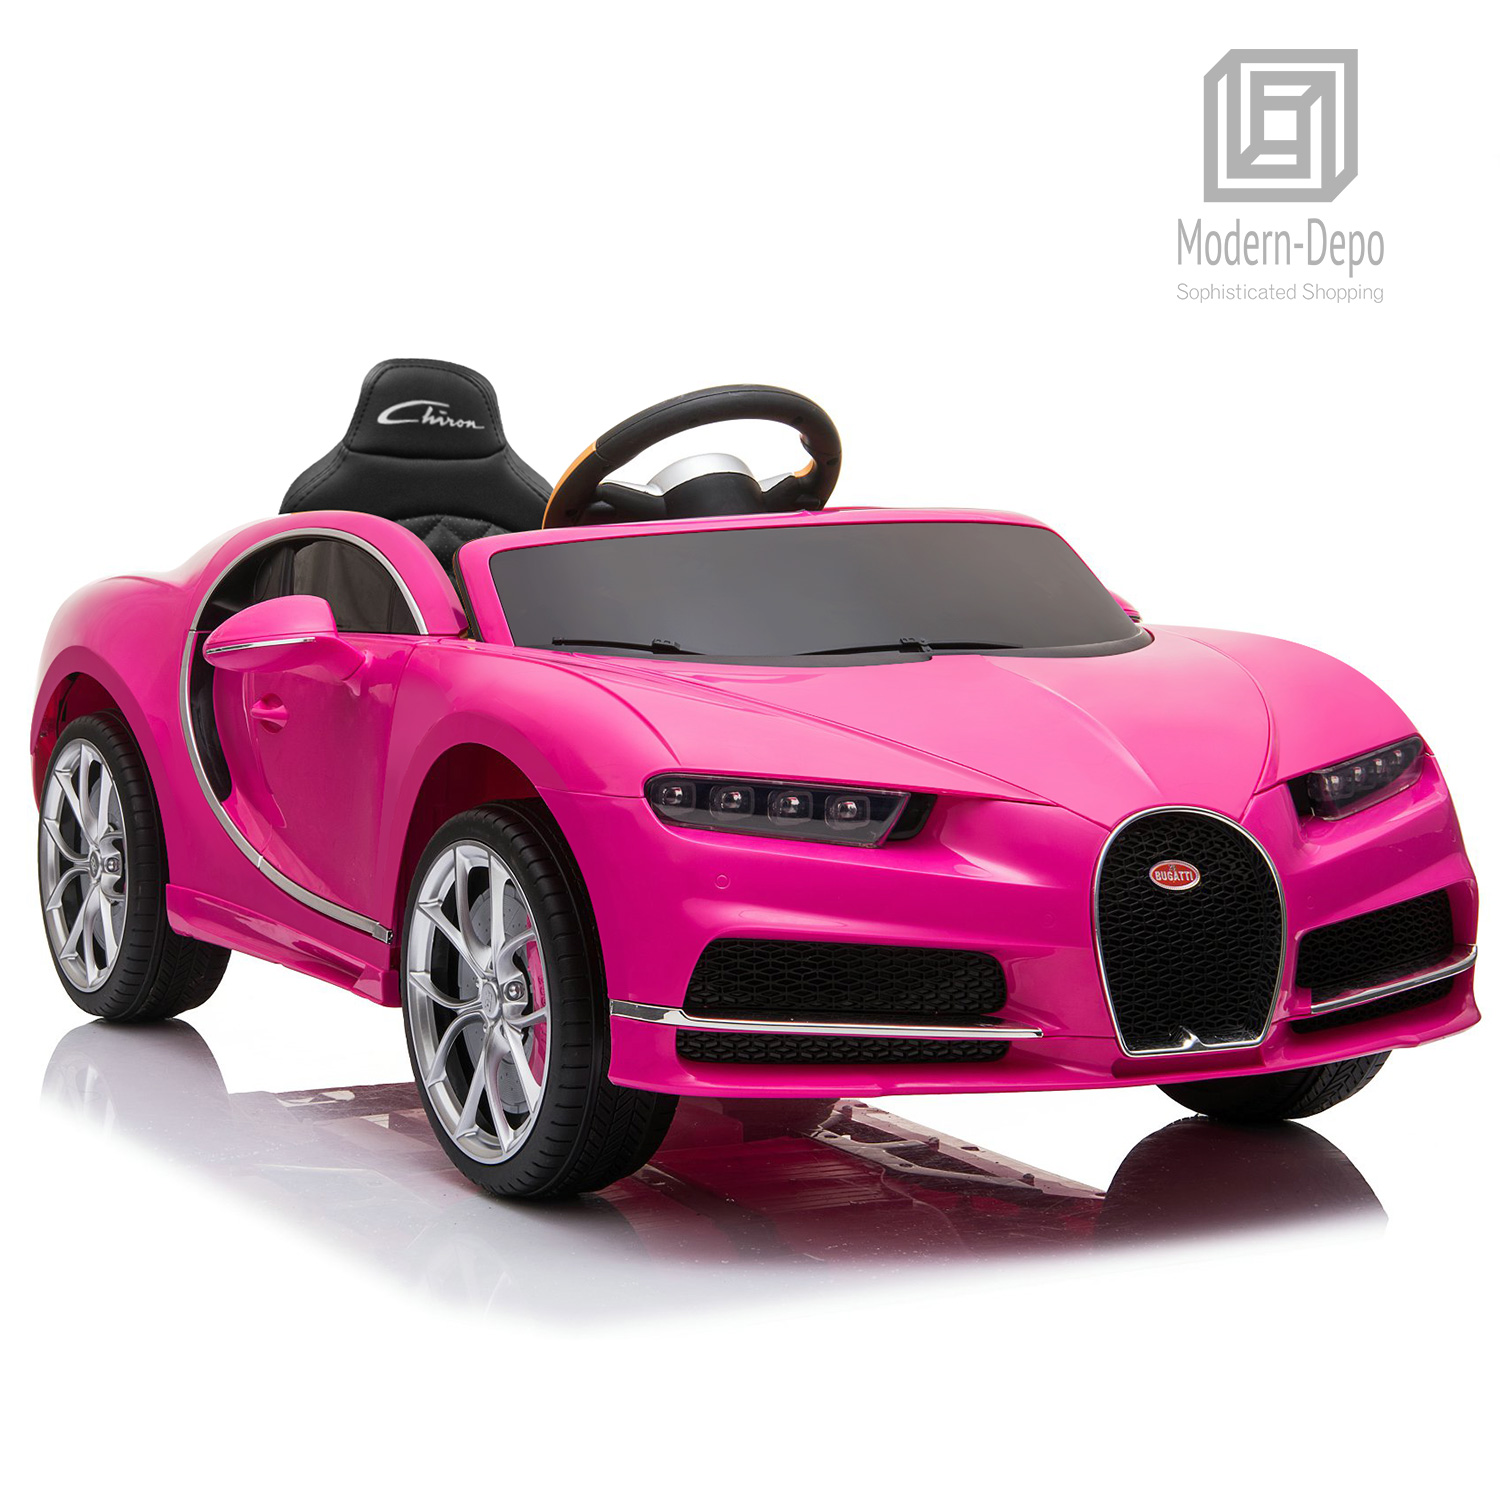 Bugatti-Chiron-12V-Kids-Ride-On-Car-with-Remote-Control-High-Speed-Motor miniature 28